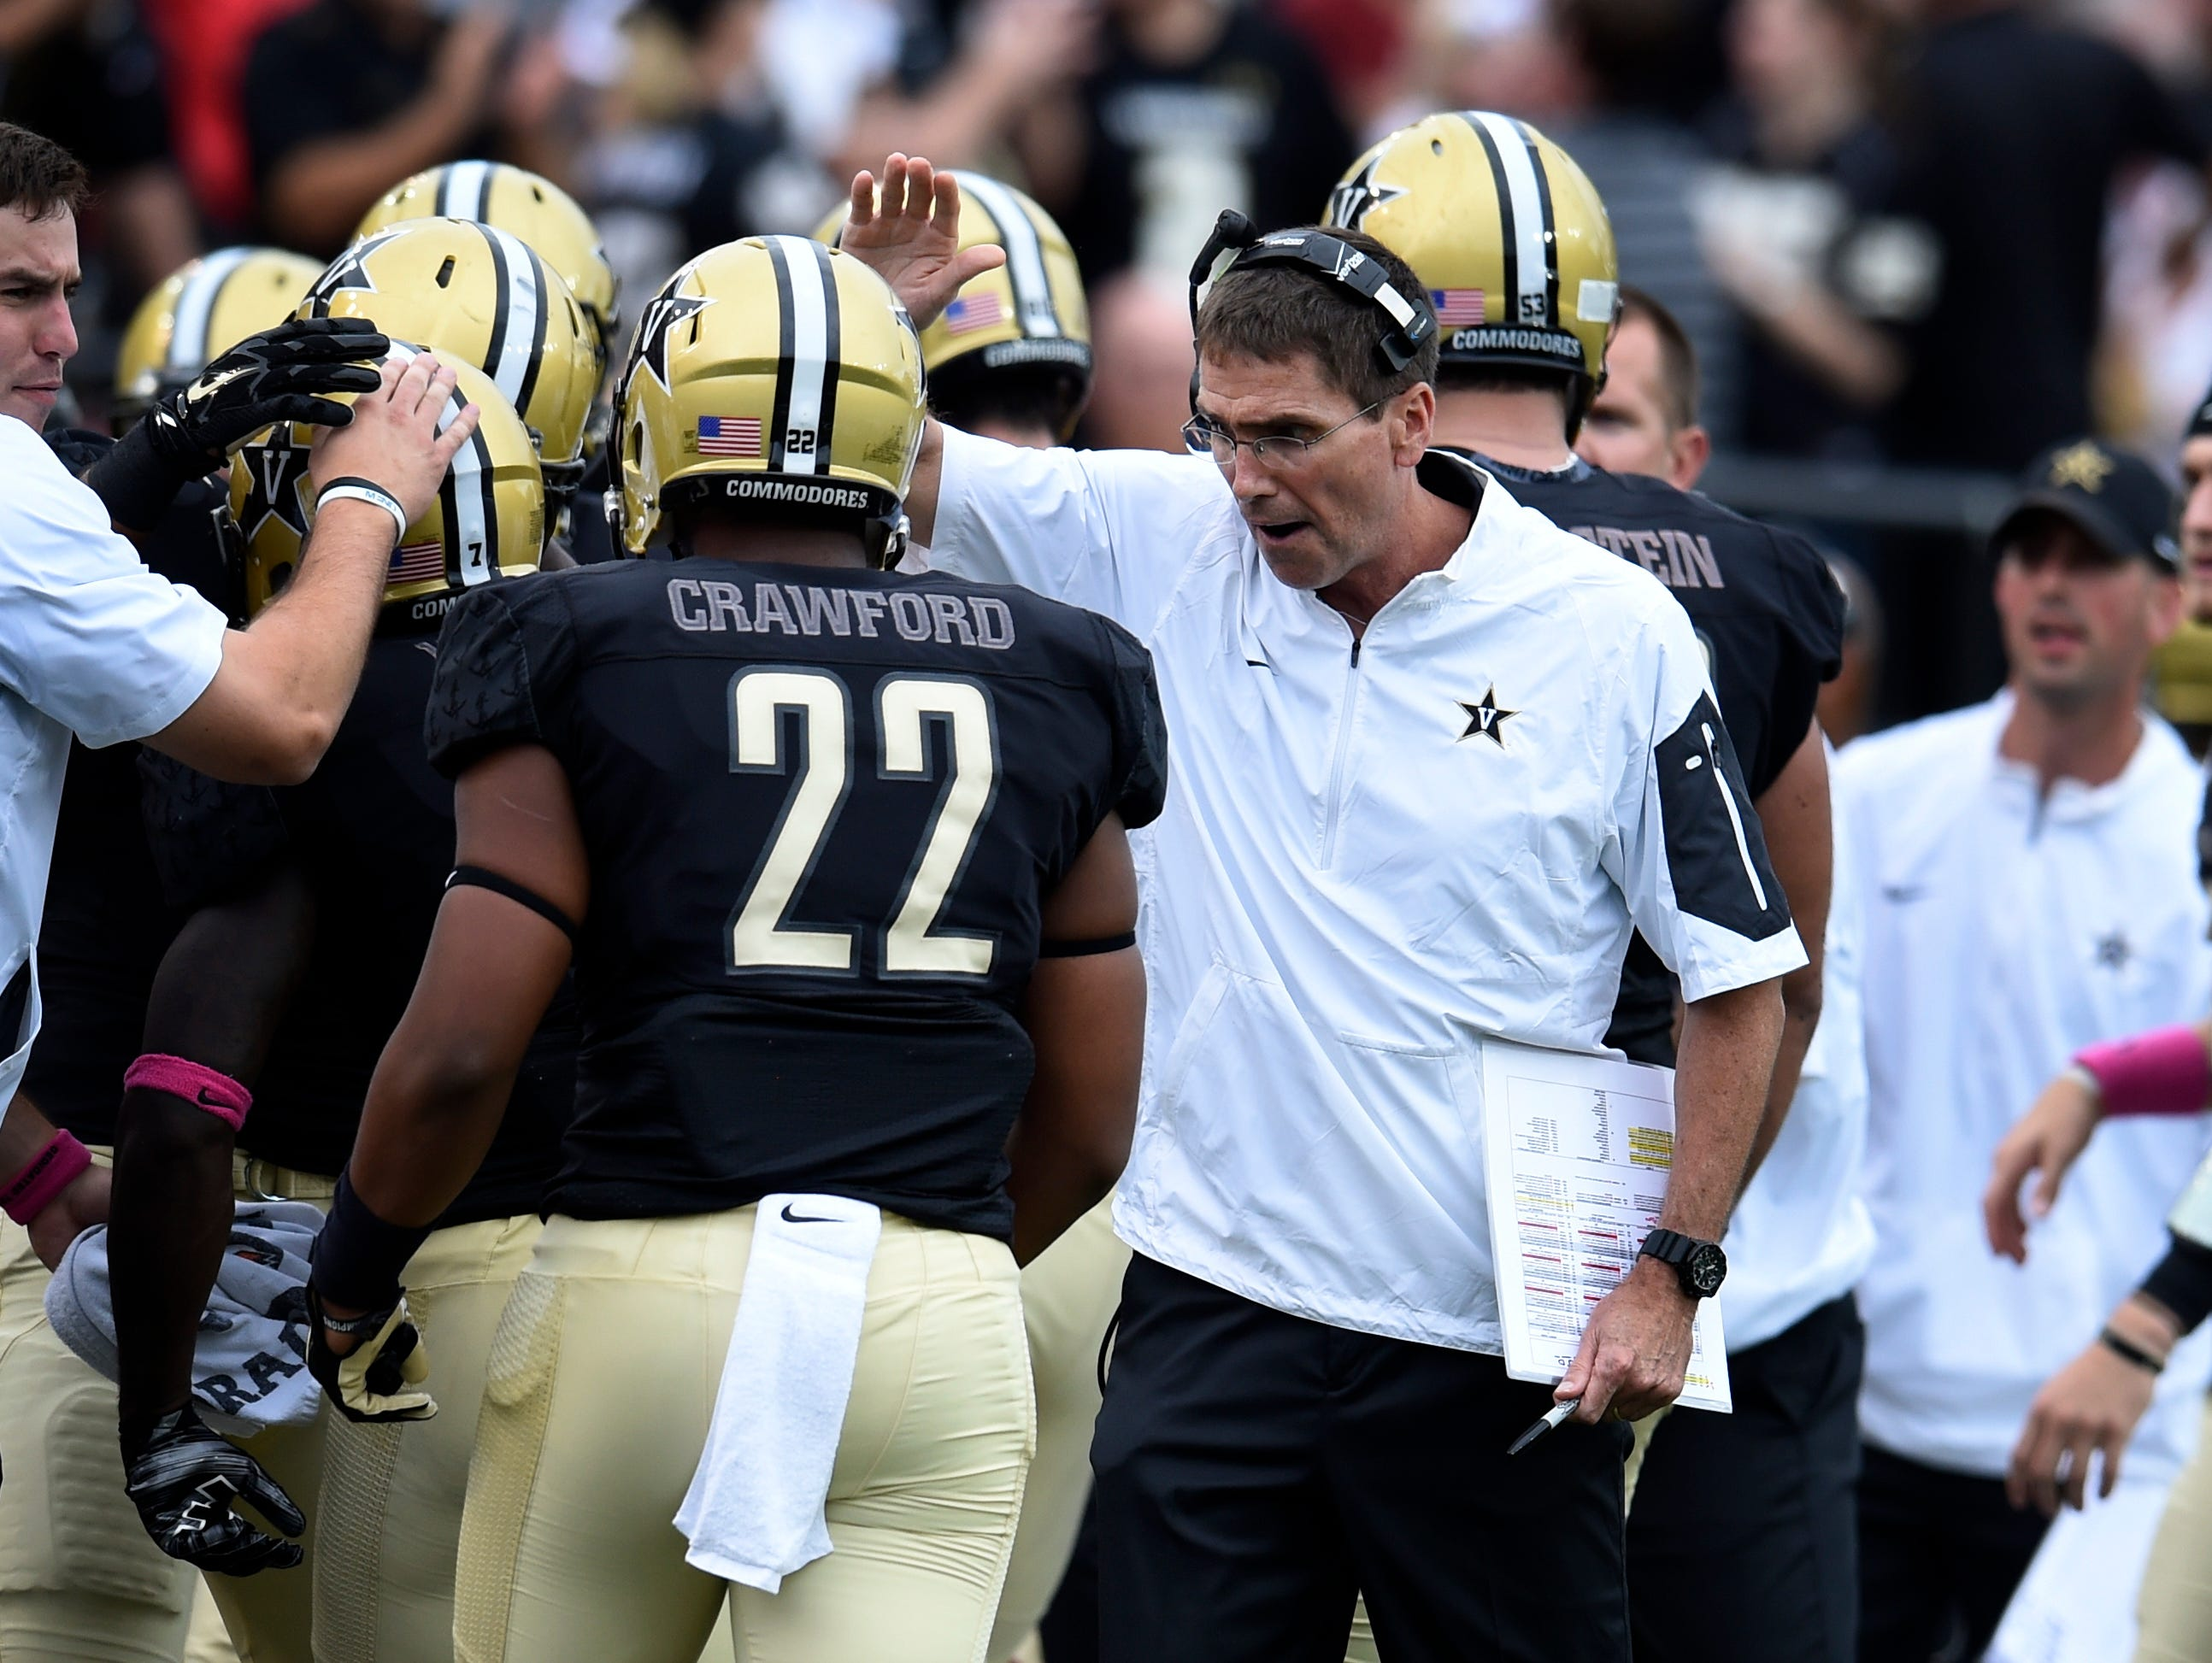 Vanderbilt offensive coordinator Andy Ludwig congratulates his players after the Commodores scored a touchdown during the second quarter against Missouri on Oct. 24, 2015.